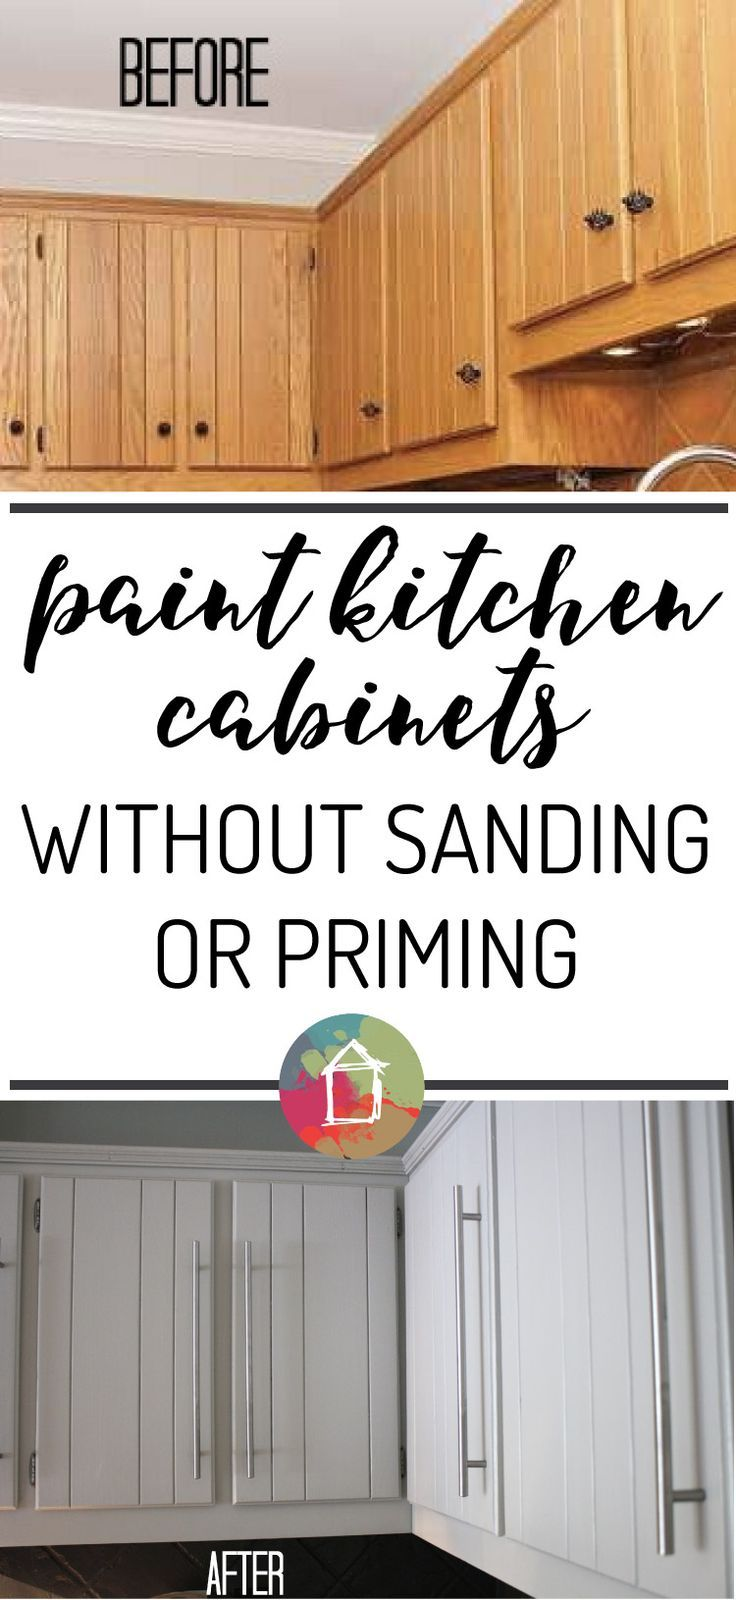 How To Paint Kitchen Cabinets Without Sanding Or Priming Step By Step Kitchen Diy Makeover Painting Kitchen Cabinets Kitchen Cabinets